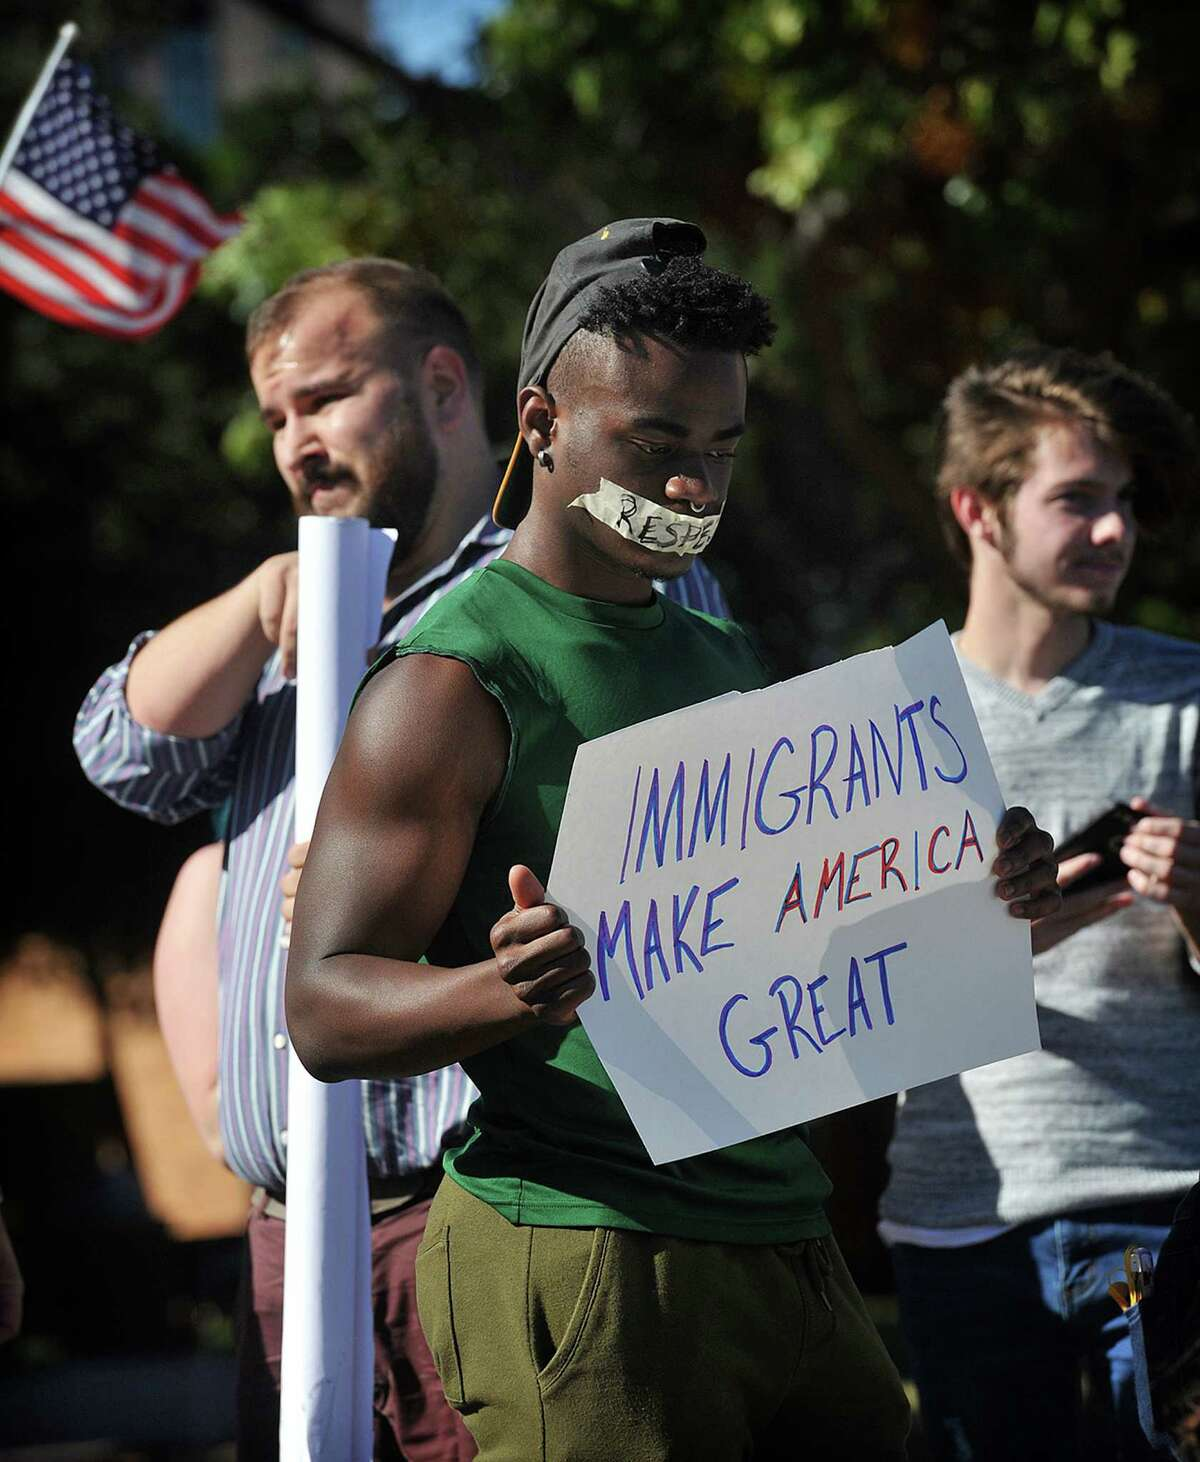 Midwestern State University nursing student Richard Brown was one of about 70 students who came out to stage a peaceful protest against hate, intolerance and president elect Donald Trump, on campus Wednesday afternoon in Wichita Falls, Texas. A smaller group held signs supporting Trump/Pence. (Torin Halsey/Wichita Falls Times Record News via AP)